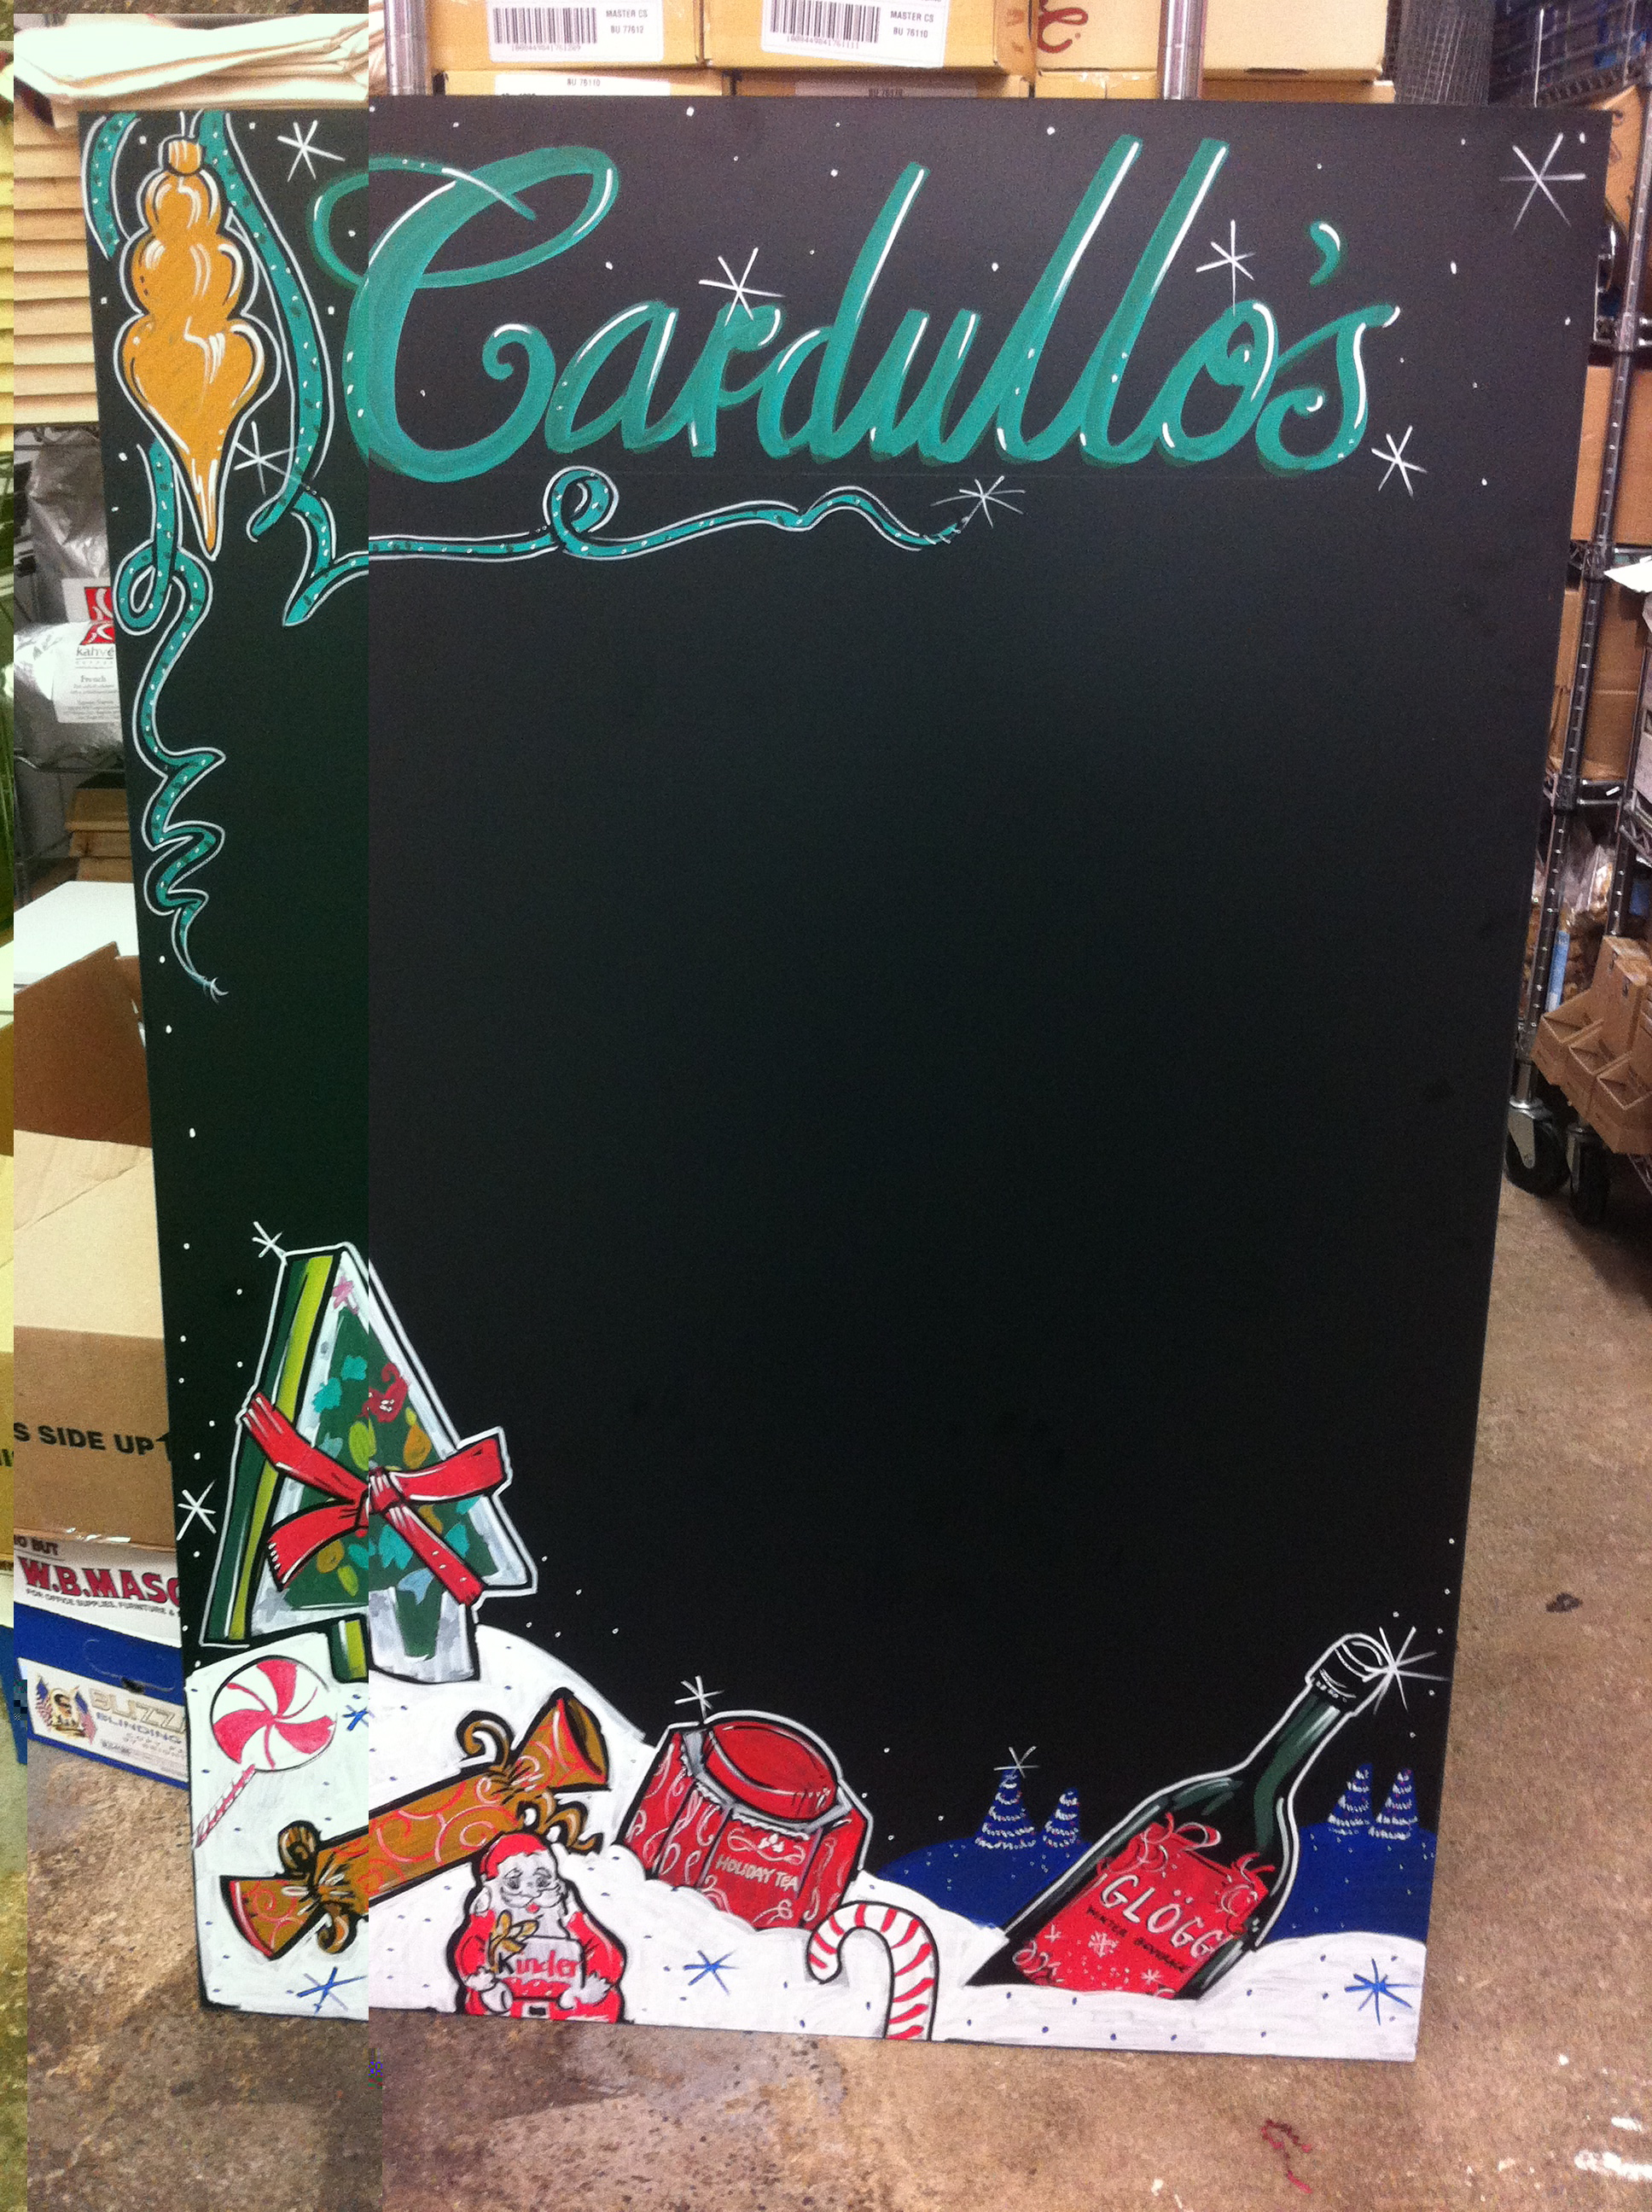 Cardullo's A-Frame